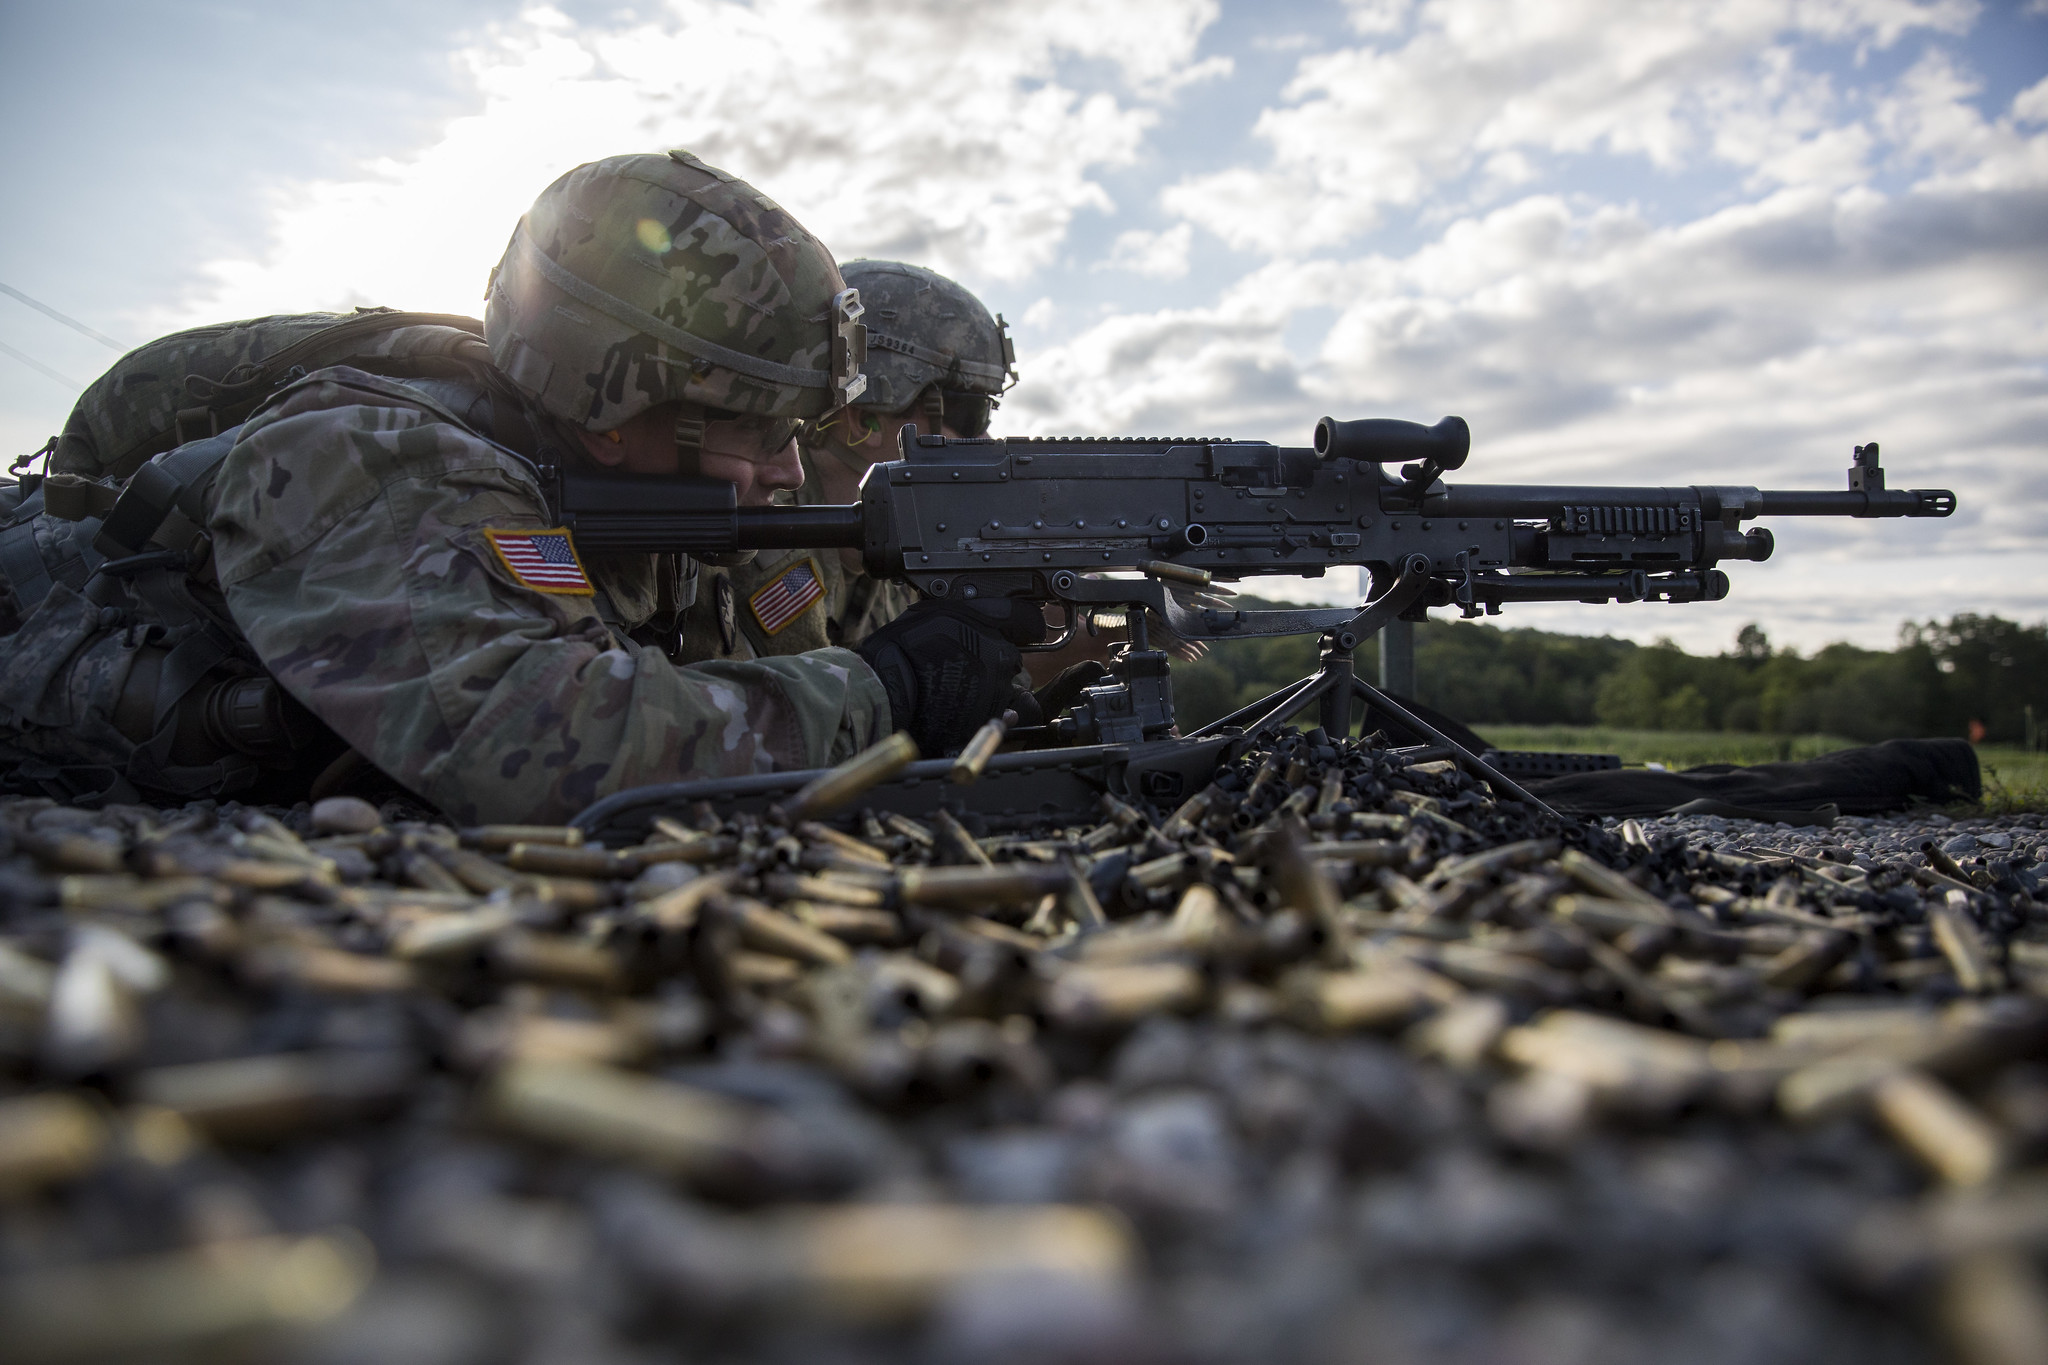 New Bravo Company cadets learn how to properly handle a M240B machine gun as part of their Cadet Basic Training at Camp Buckner, N.Y., Aug. 1, 2019. (Matthew Moeller/Army)